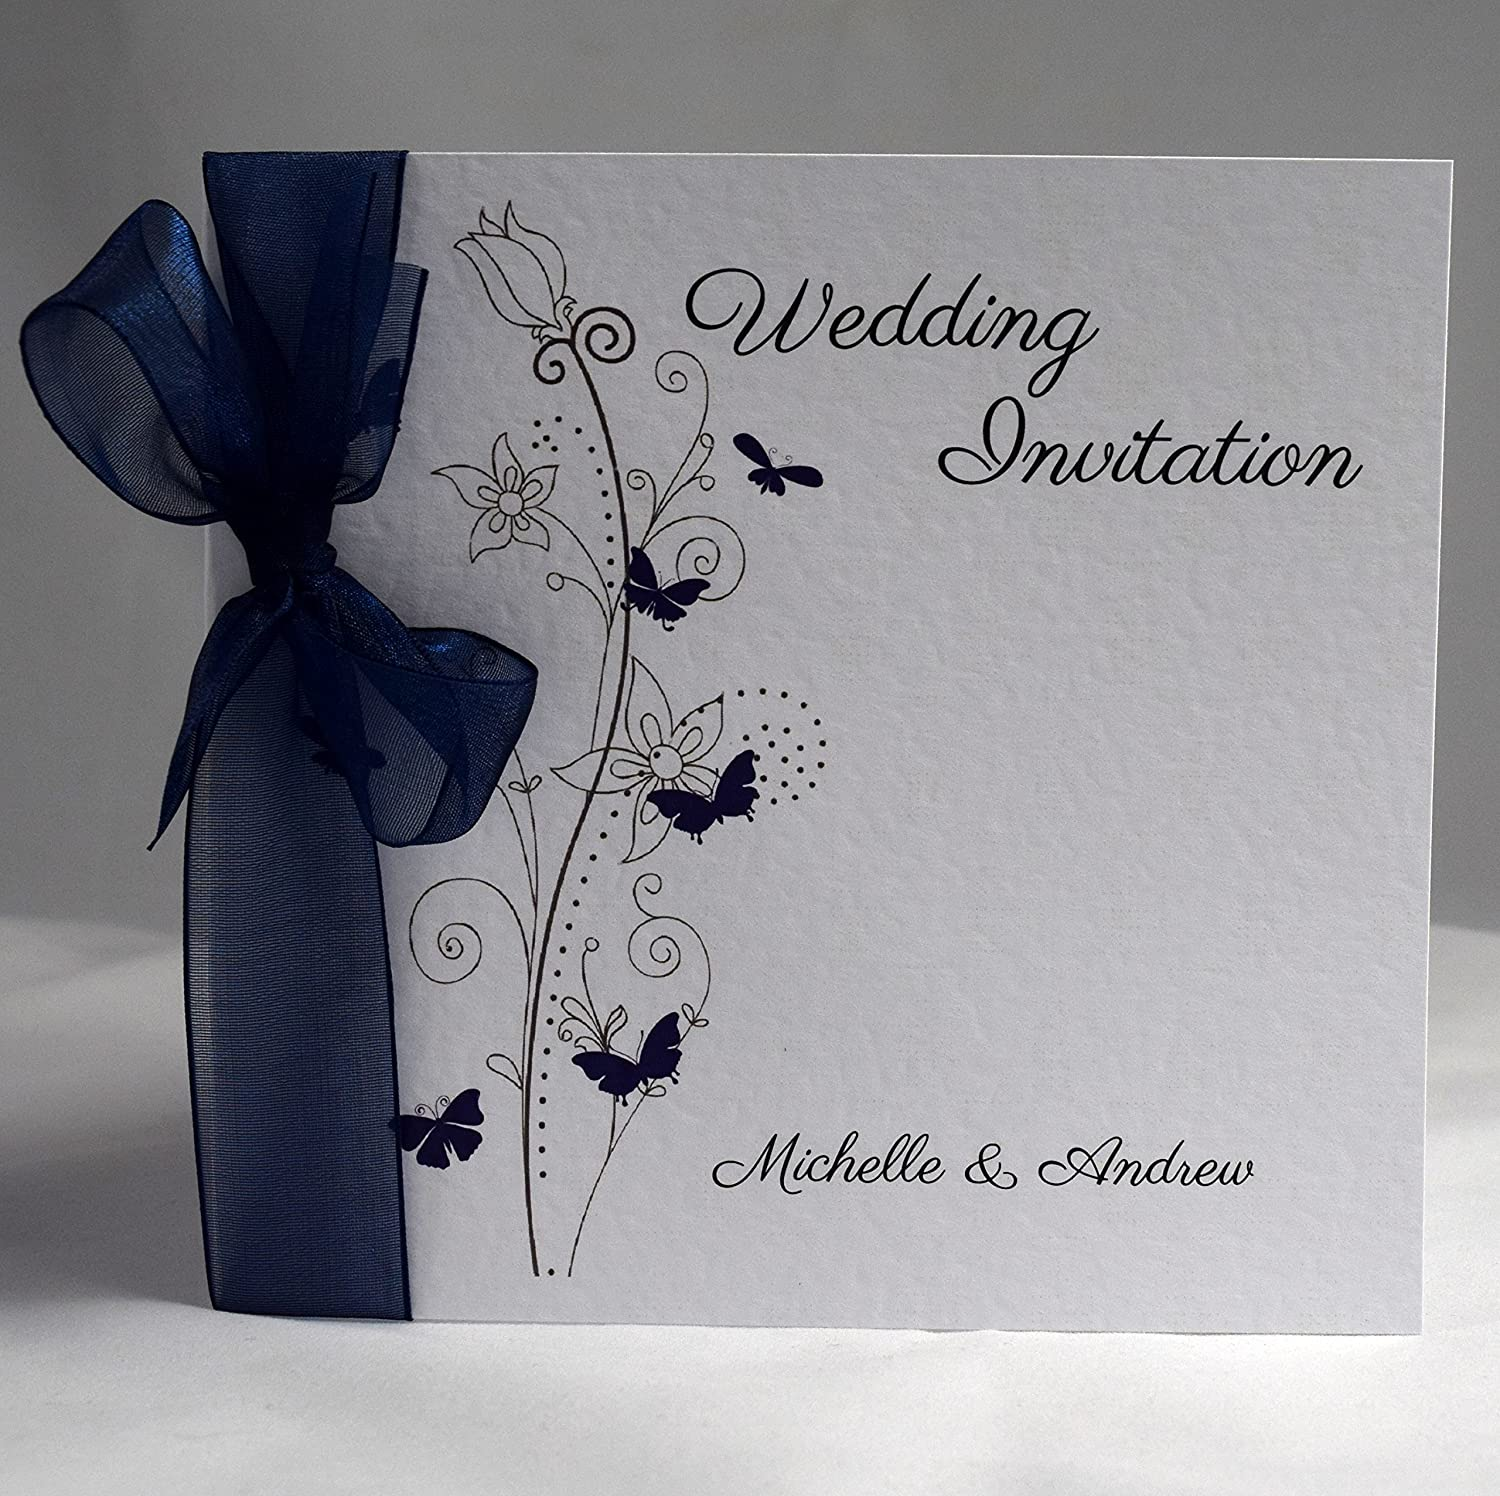 Butterfly Wedding Invitations Personalised with Ribbon (Available in Many Colours) (Royal Blue Organza) Packs of 10 Invitations by Shell Windsor